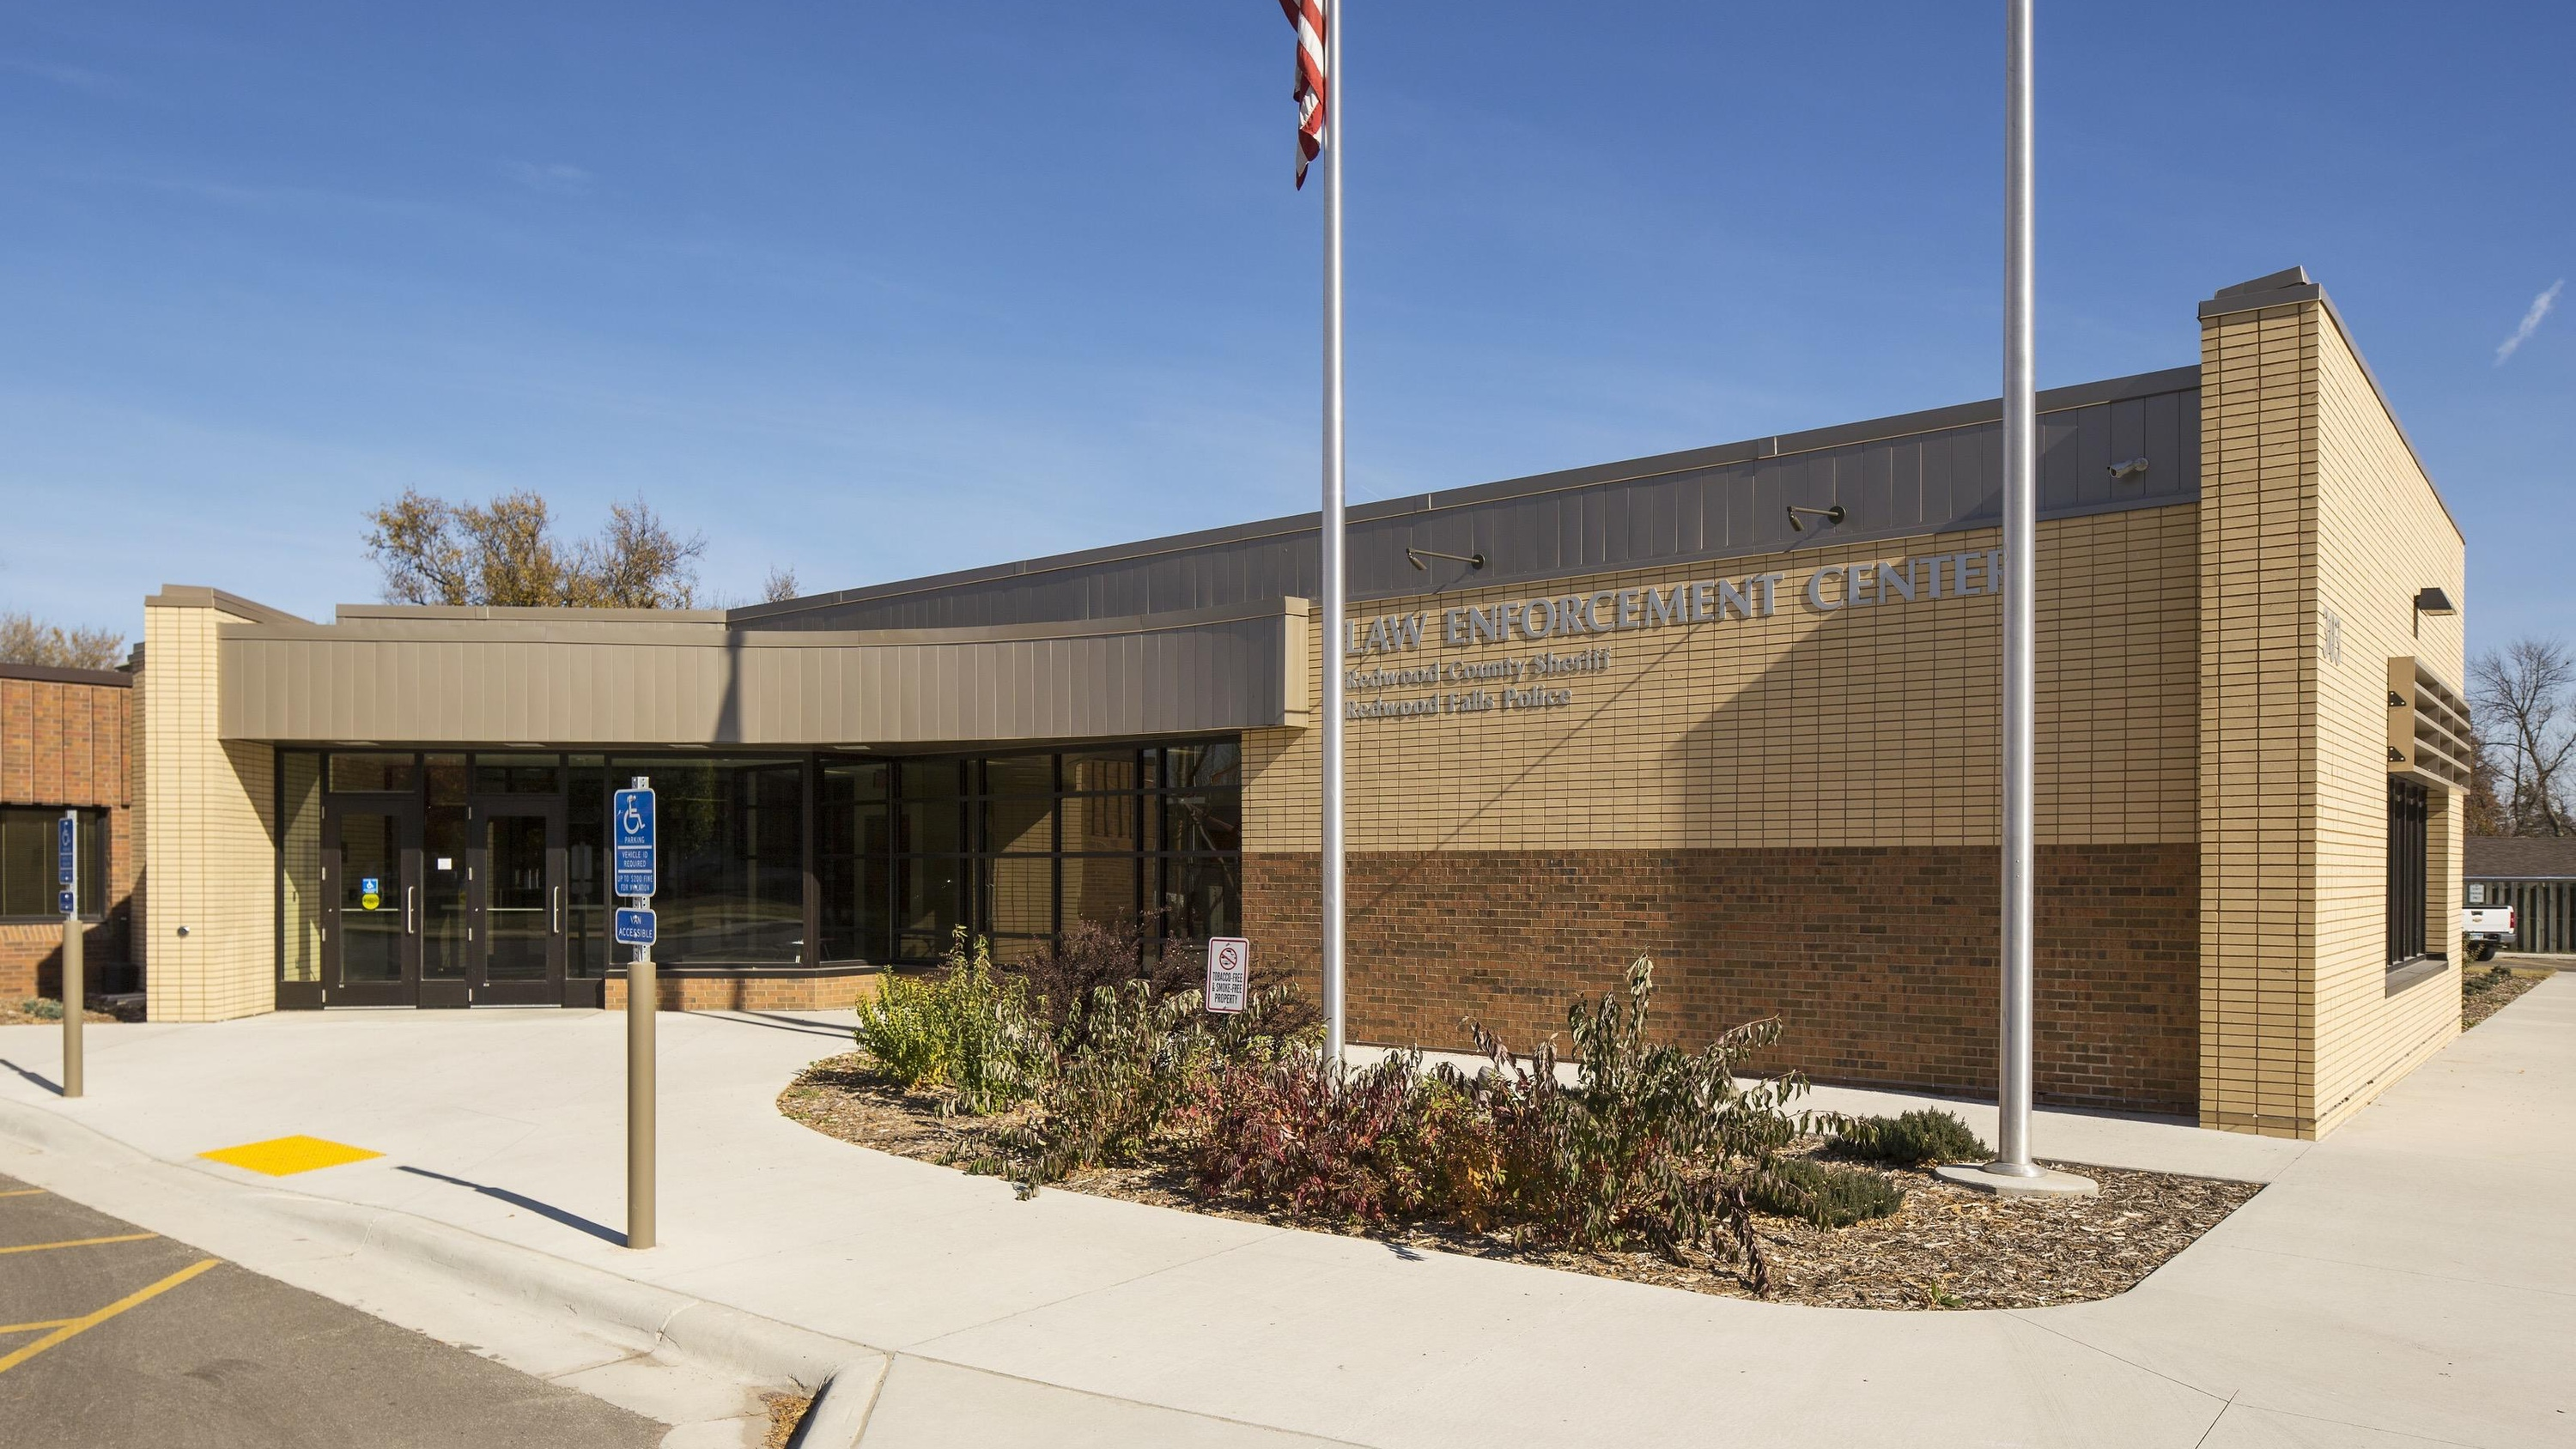 Redwood County Jail and law enforcement center